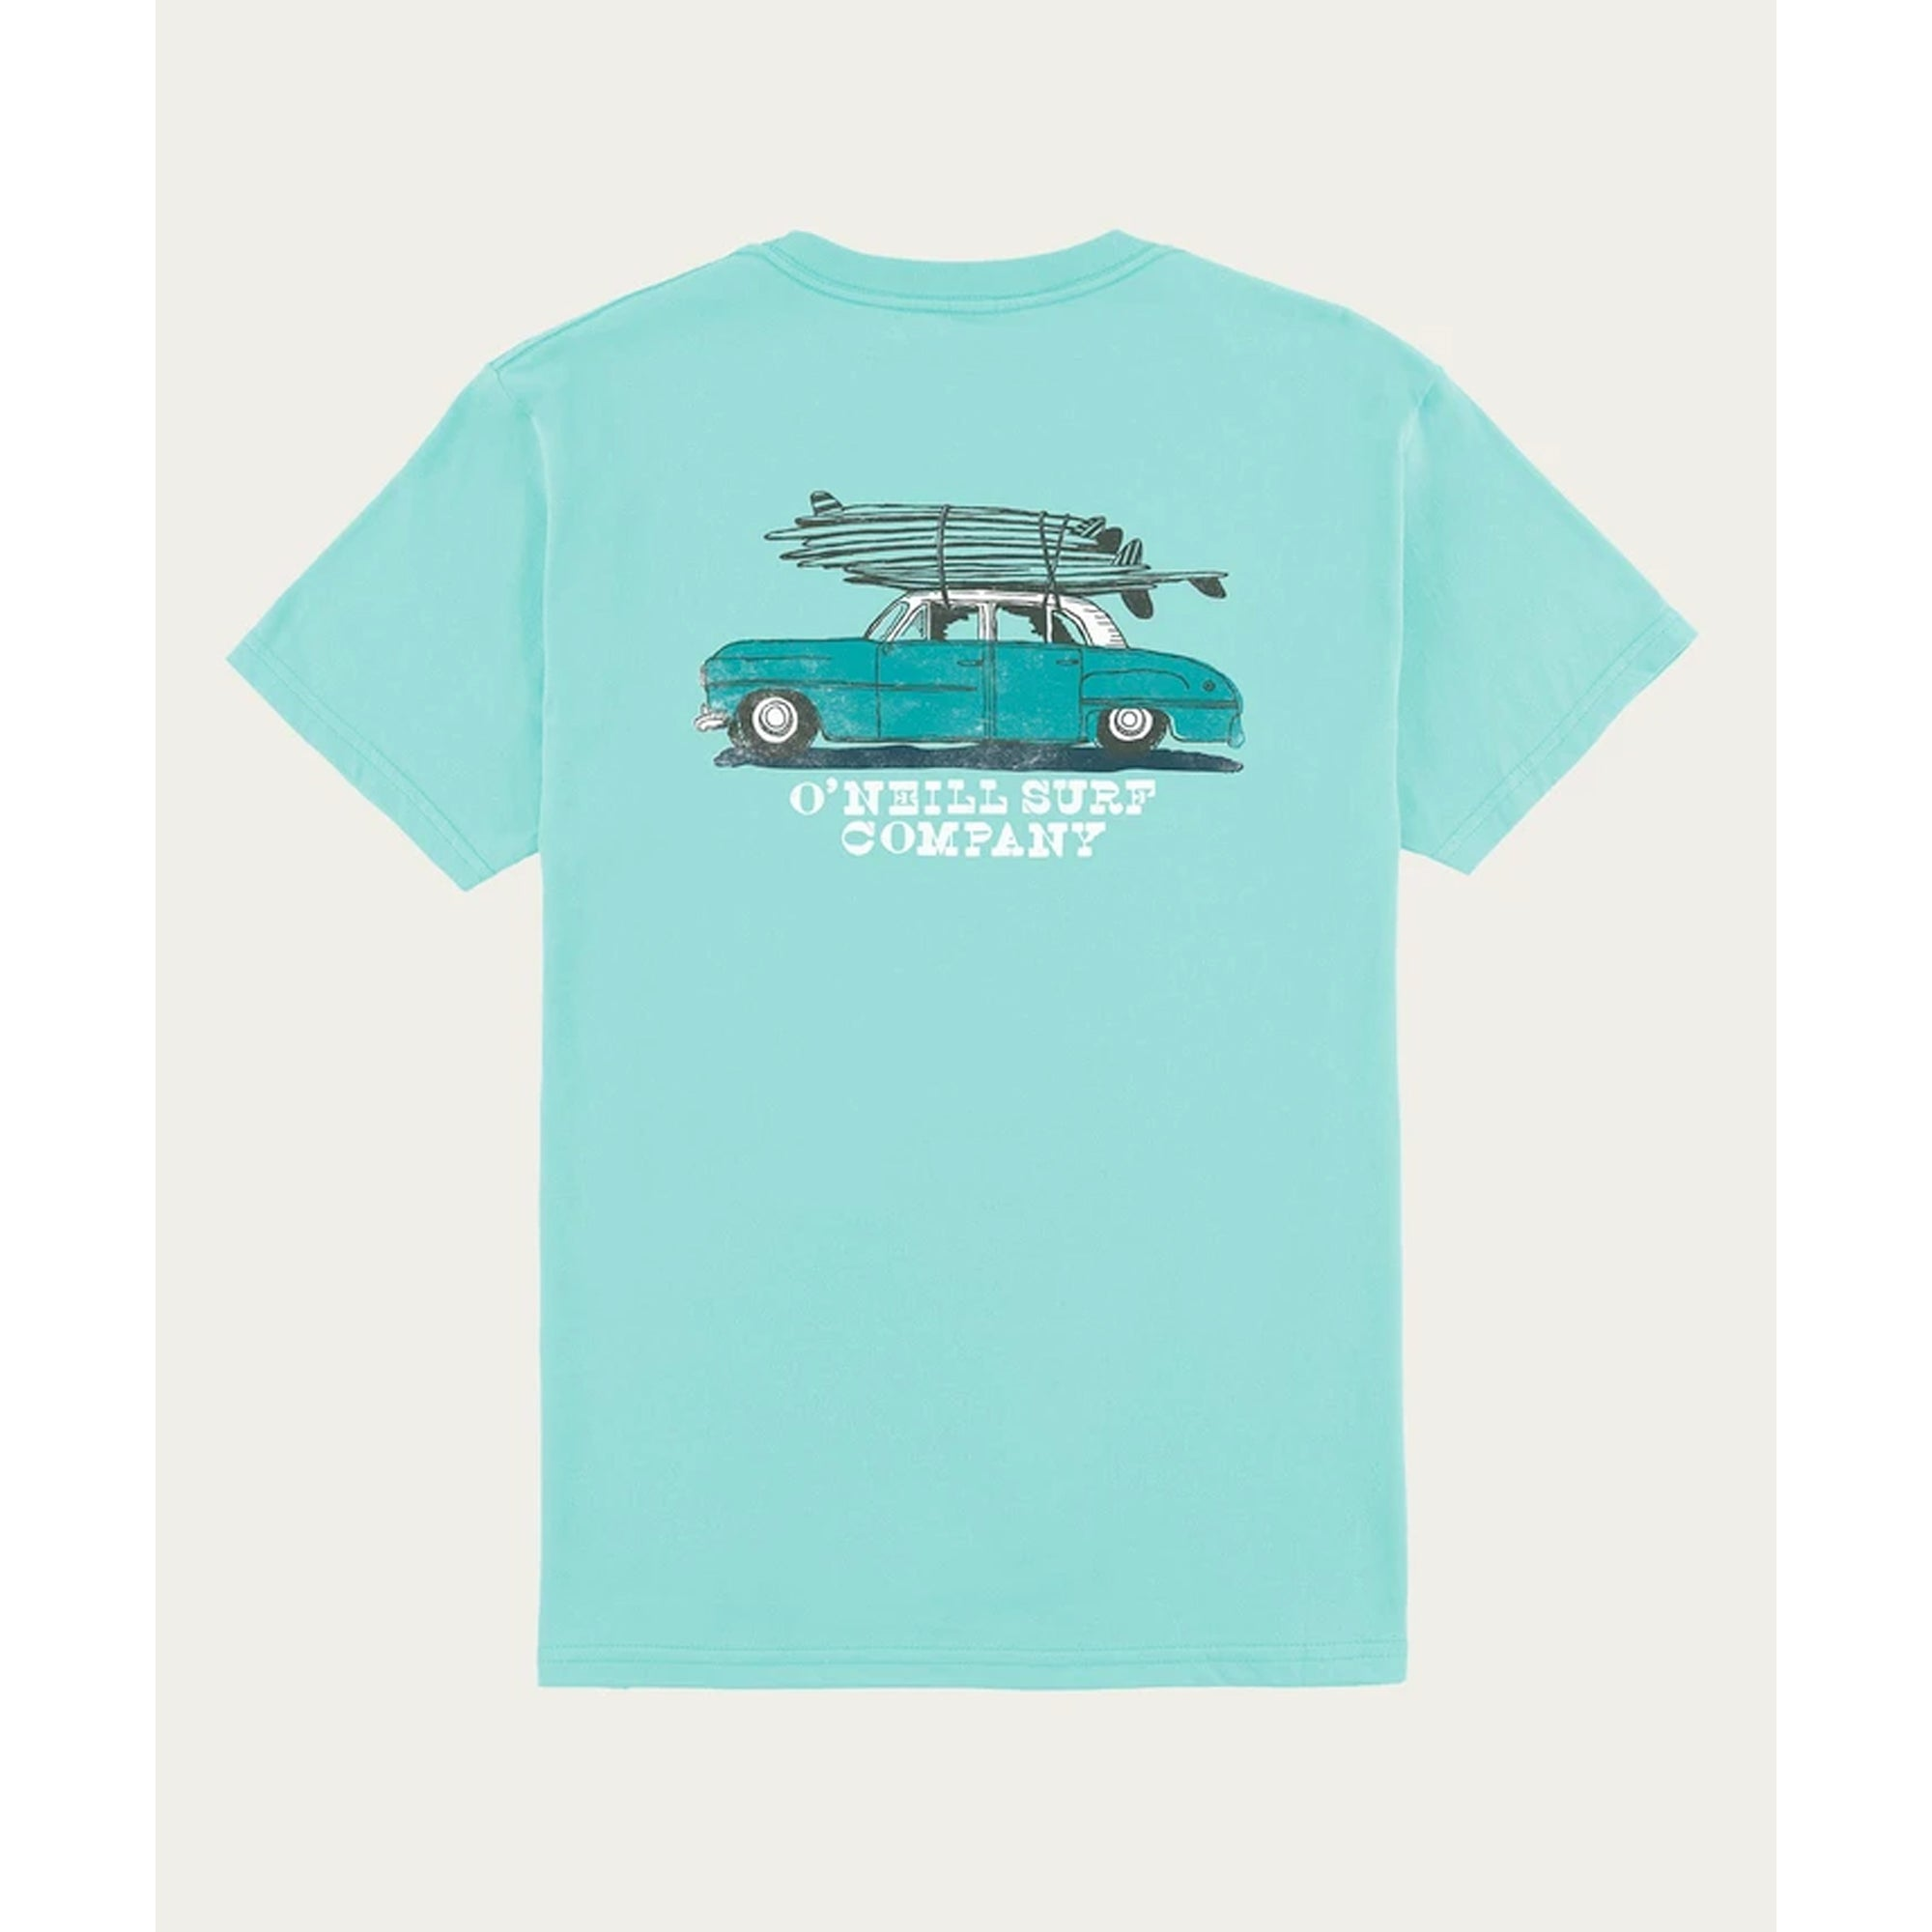 O'Neill Hardtop Youth Boy's S/S T-Shirt